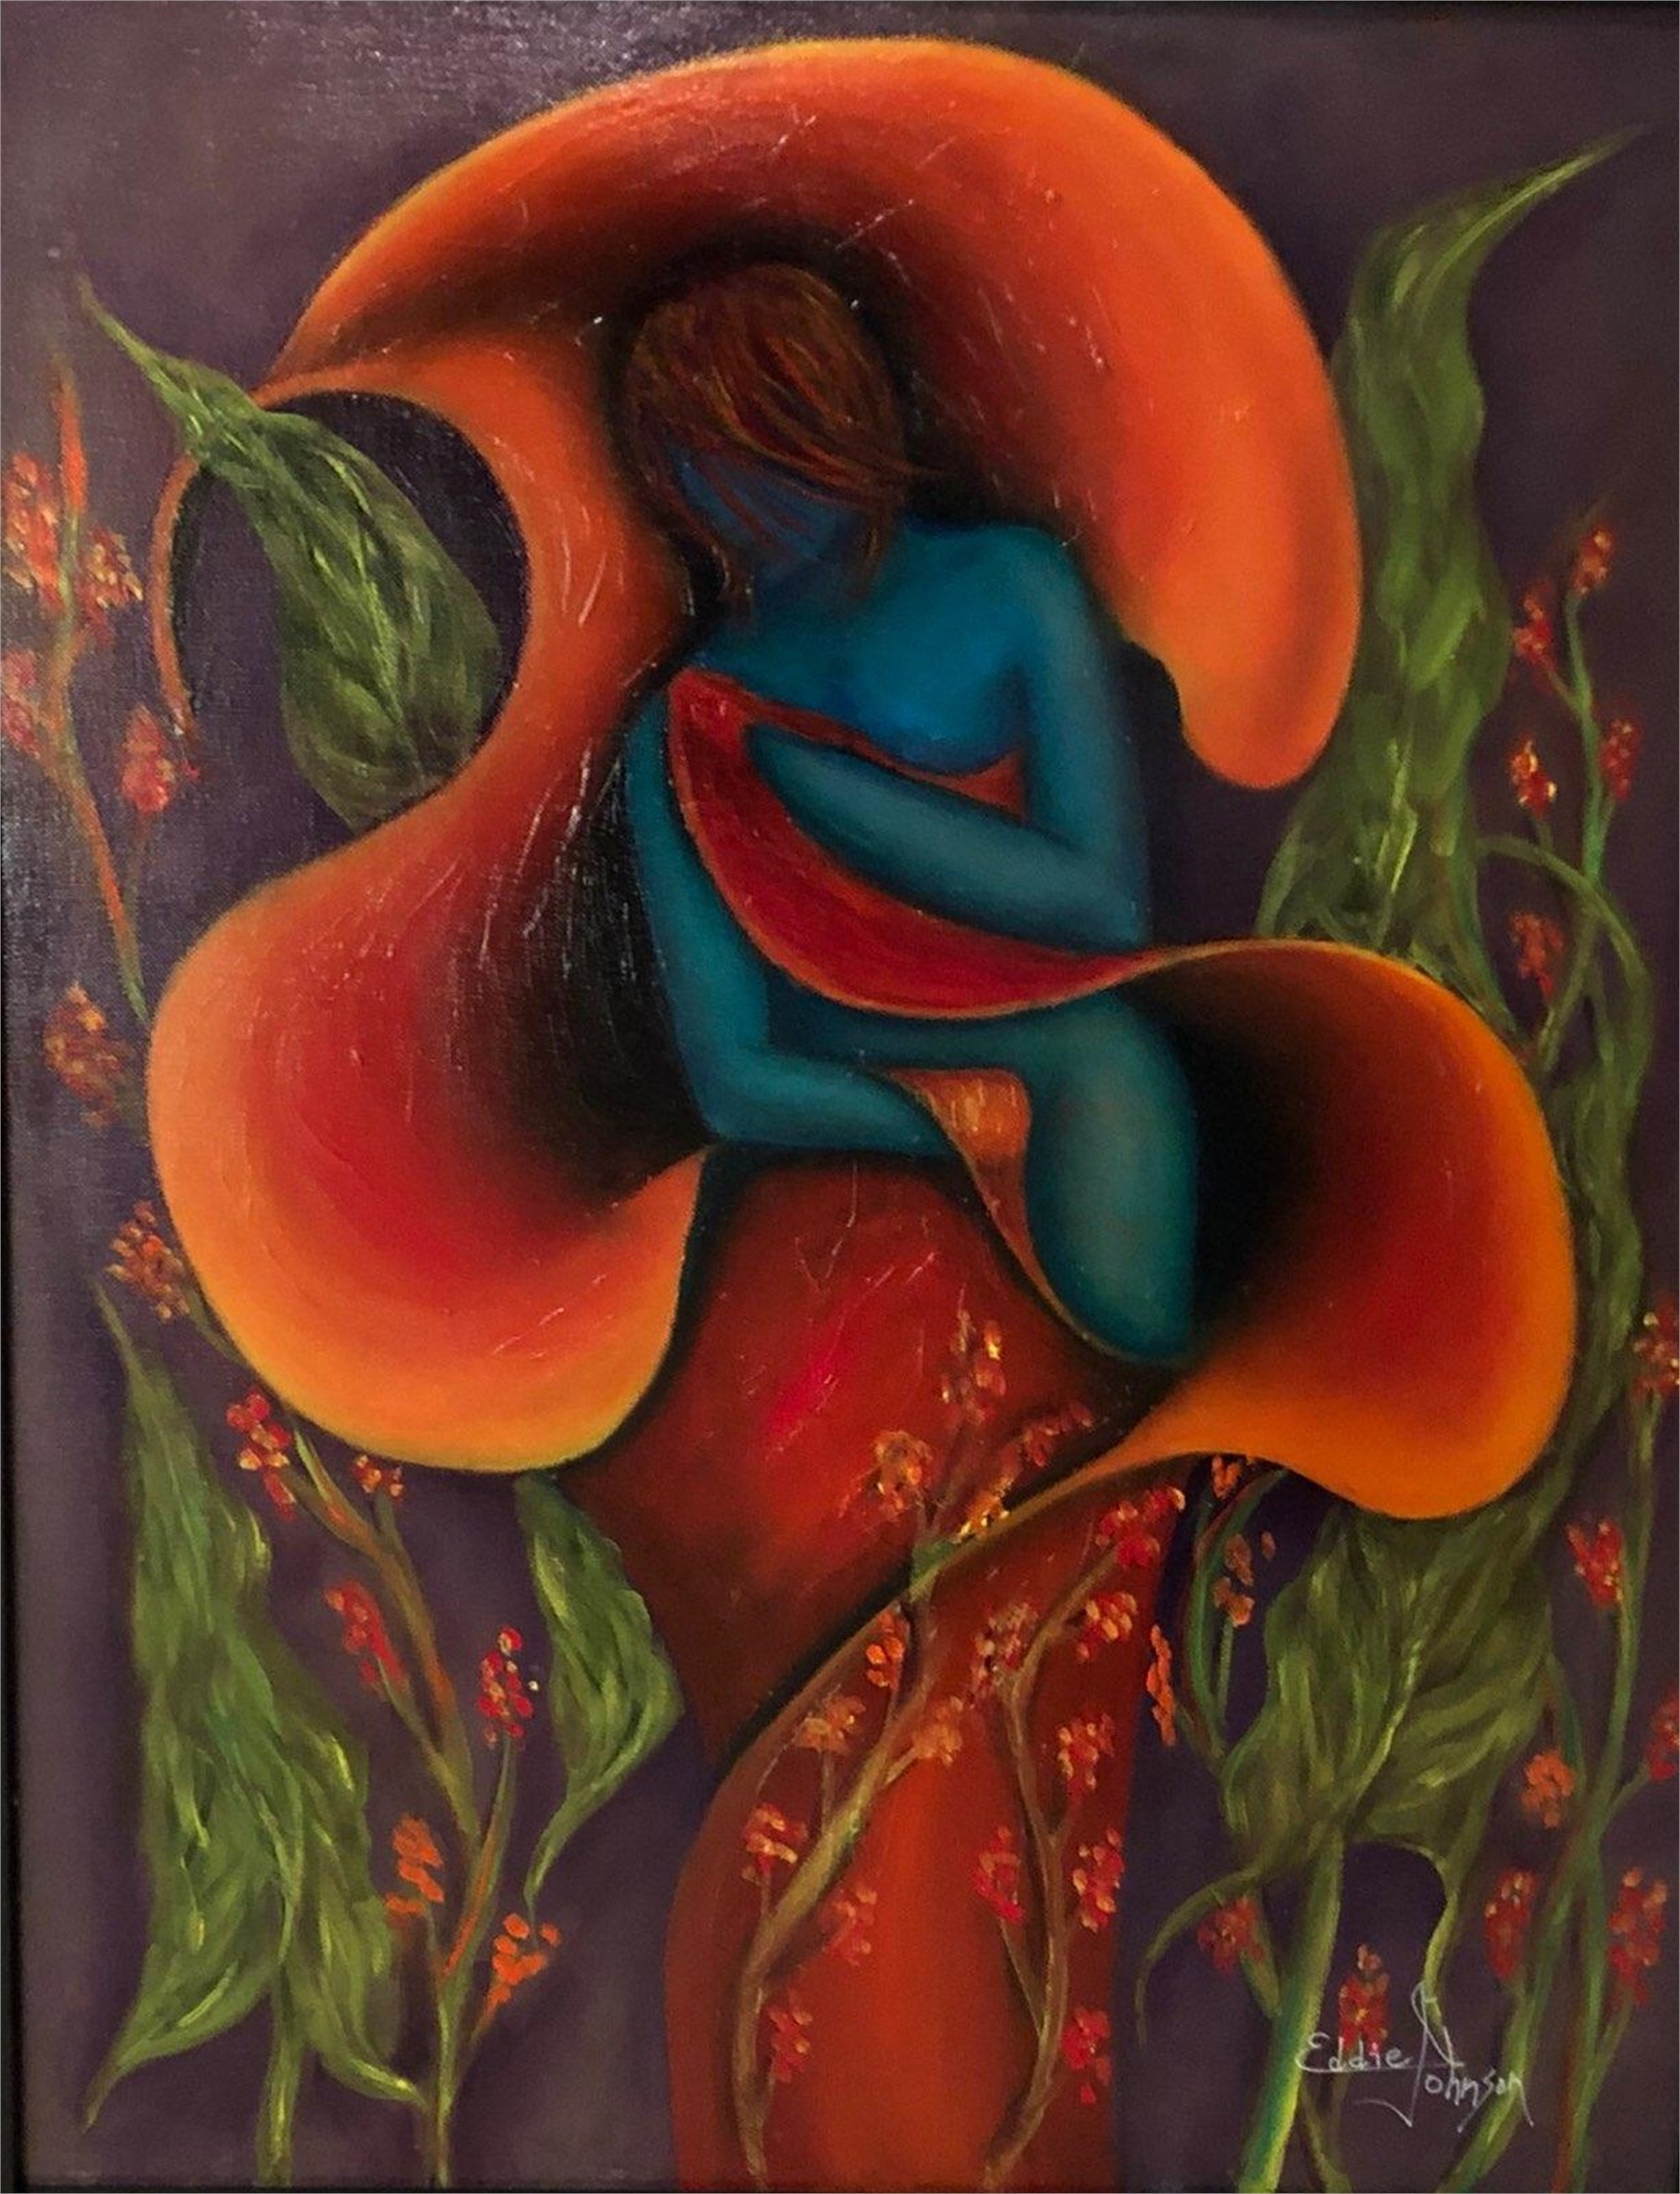 Comfort by Edwin Johnson (McMinnville, OR)